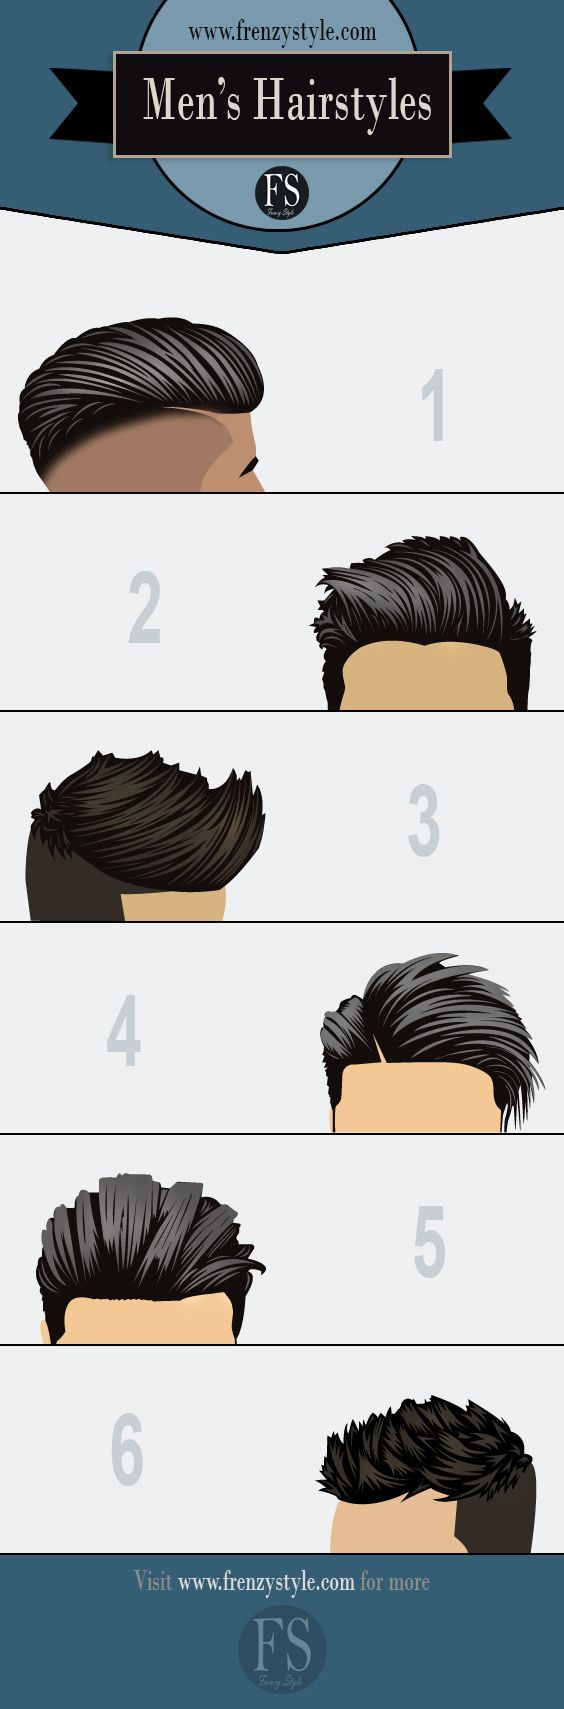 49 Cool New Hairstyles For Men 2018